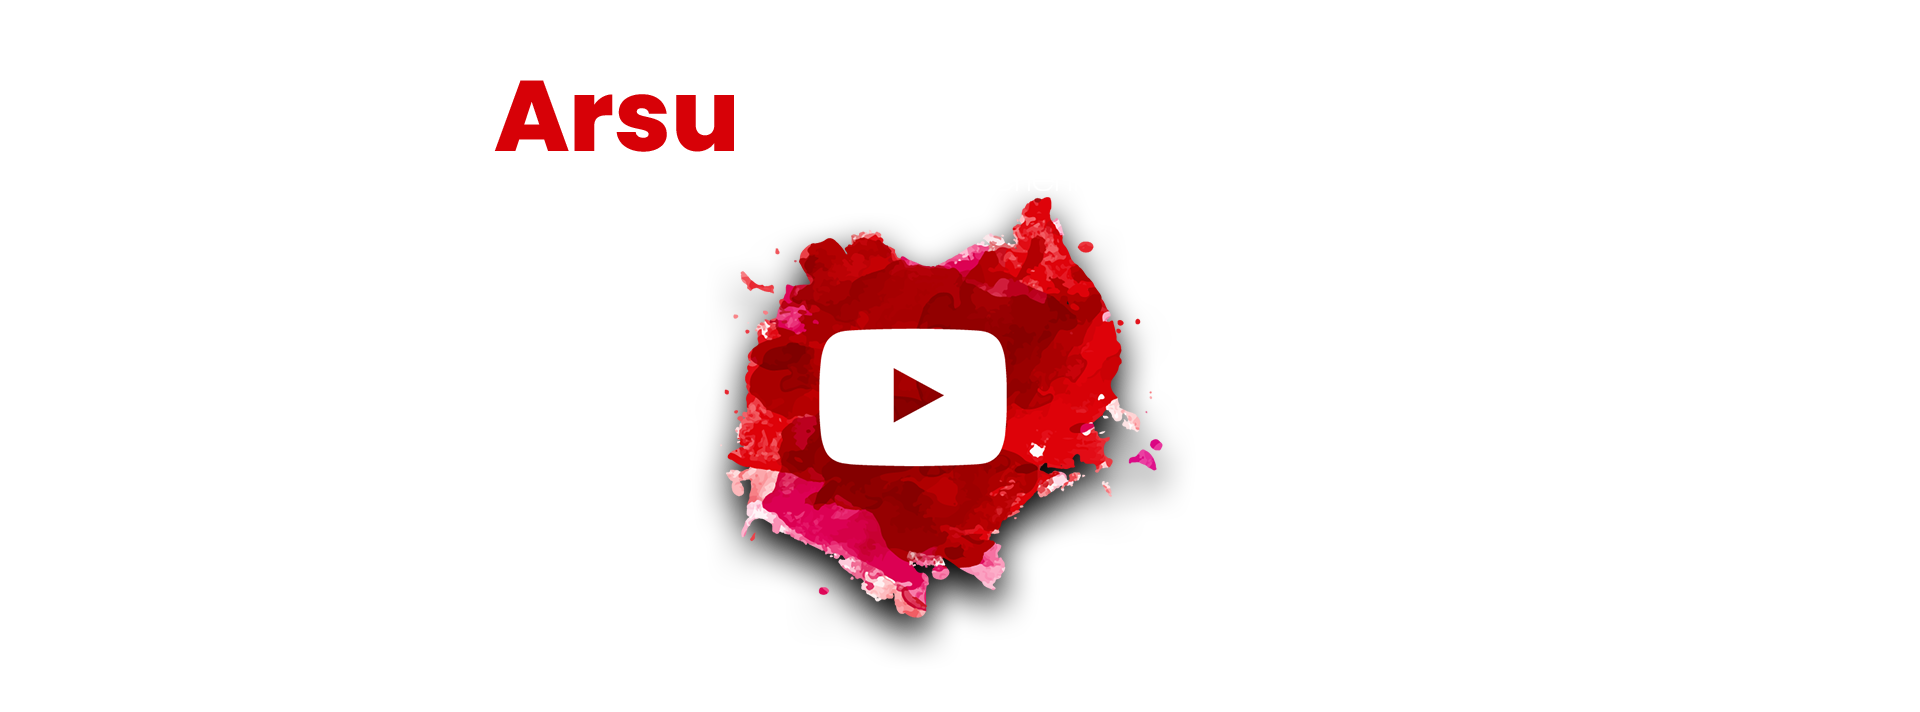 Arsu Akademi TV